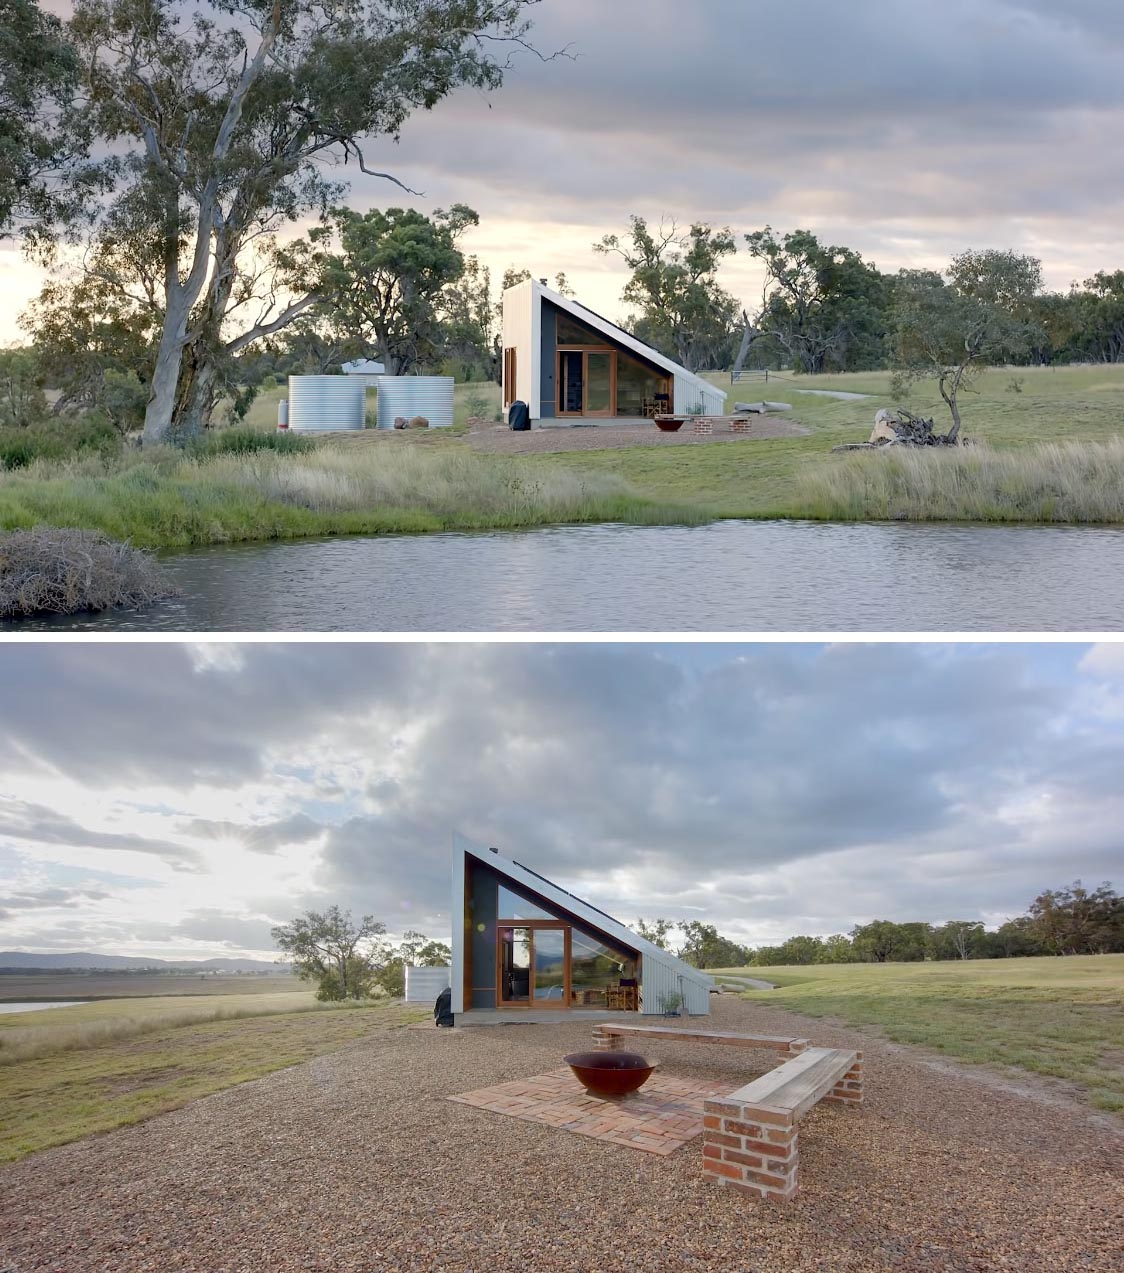 The design of this small 430 square foot off-grid tiny house has corrugated metal siding and a 30 degree roof, that allows for solar panels.